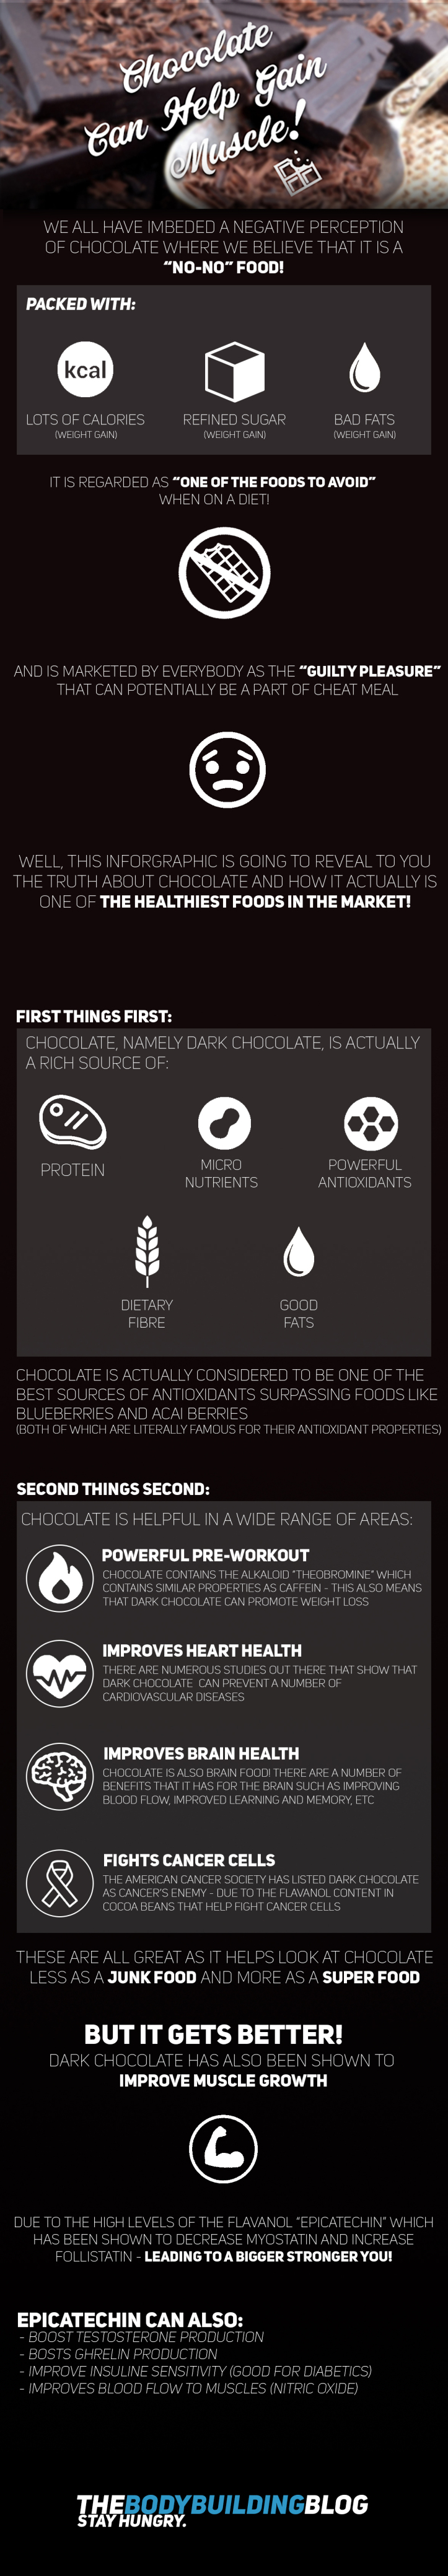 dark_chocolate_health_benefits